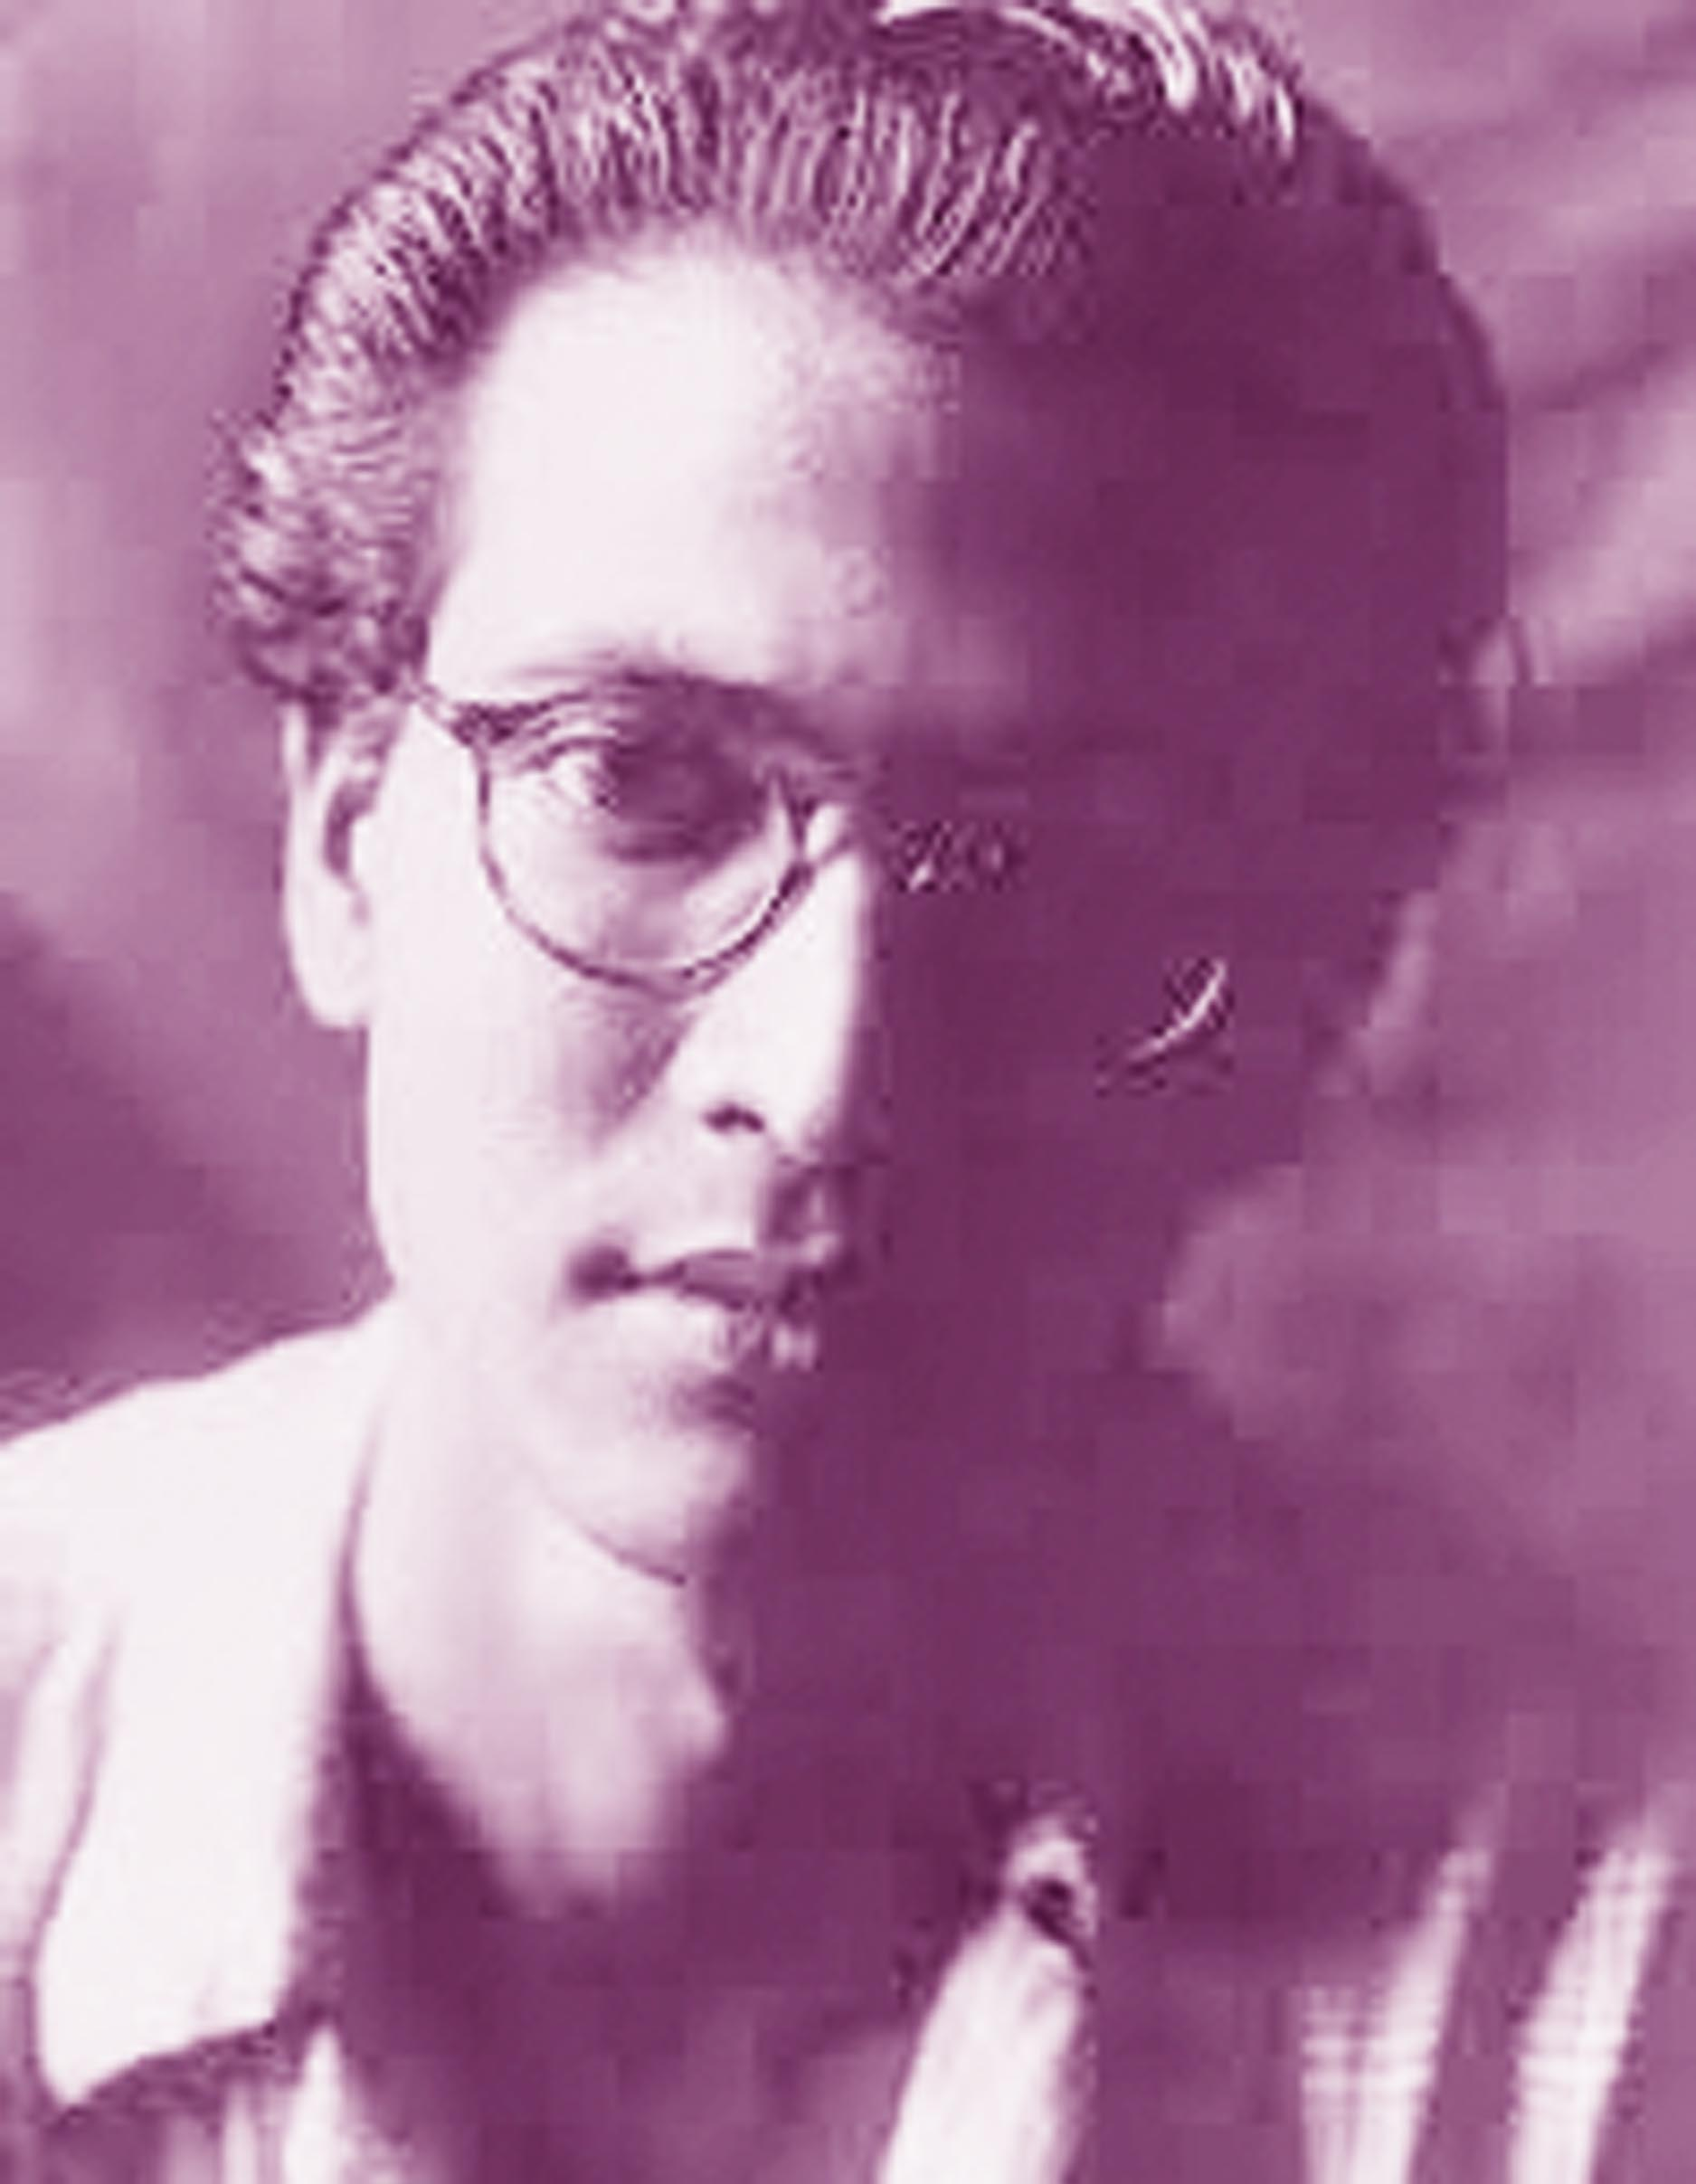 Waliullah's literary activities began, when as a student at Feni High School, he edited a hand-written magazine called Bhorer Alo. His first short story 'Hothat Alor Jholkani' was published in the Dhaka College magazine. He was proficient in both English and Bangla. He briefly published an English journal 'Contemporary.' He worked as a Sub-Editor in Calcutta's Statesman during 1945-47. He also used to write for Saogat, Mohammadi, Bulbul, Parichay, Arani and Purbasha.  After the partition of India in 1947, Syed Waliullah came to Dhaka and joined Radio Pakistan, first as an Assistant News Editor, and later as a News Editor in Karachi (1950-51). From 1951 to 1960 he served as a Press Attache at the Pakistan embassies in New  Delhi, Sydney, Jakarta and London. From 1960 to 1967 he served as First Secretary at the Pakistan embassy in Paris and from 1967 to 1971 he worked as a  Programme Specialist at UNESCO in Paris.